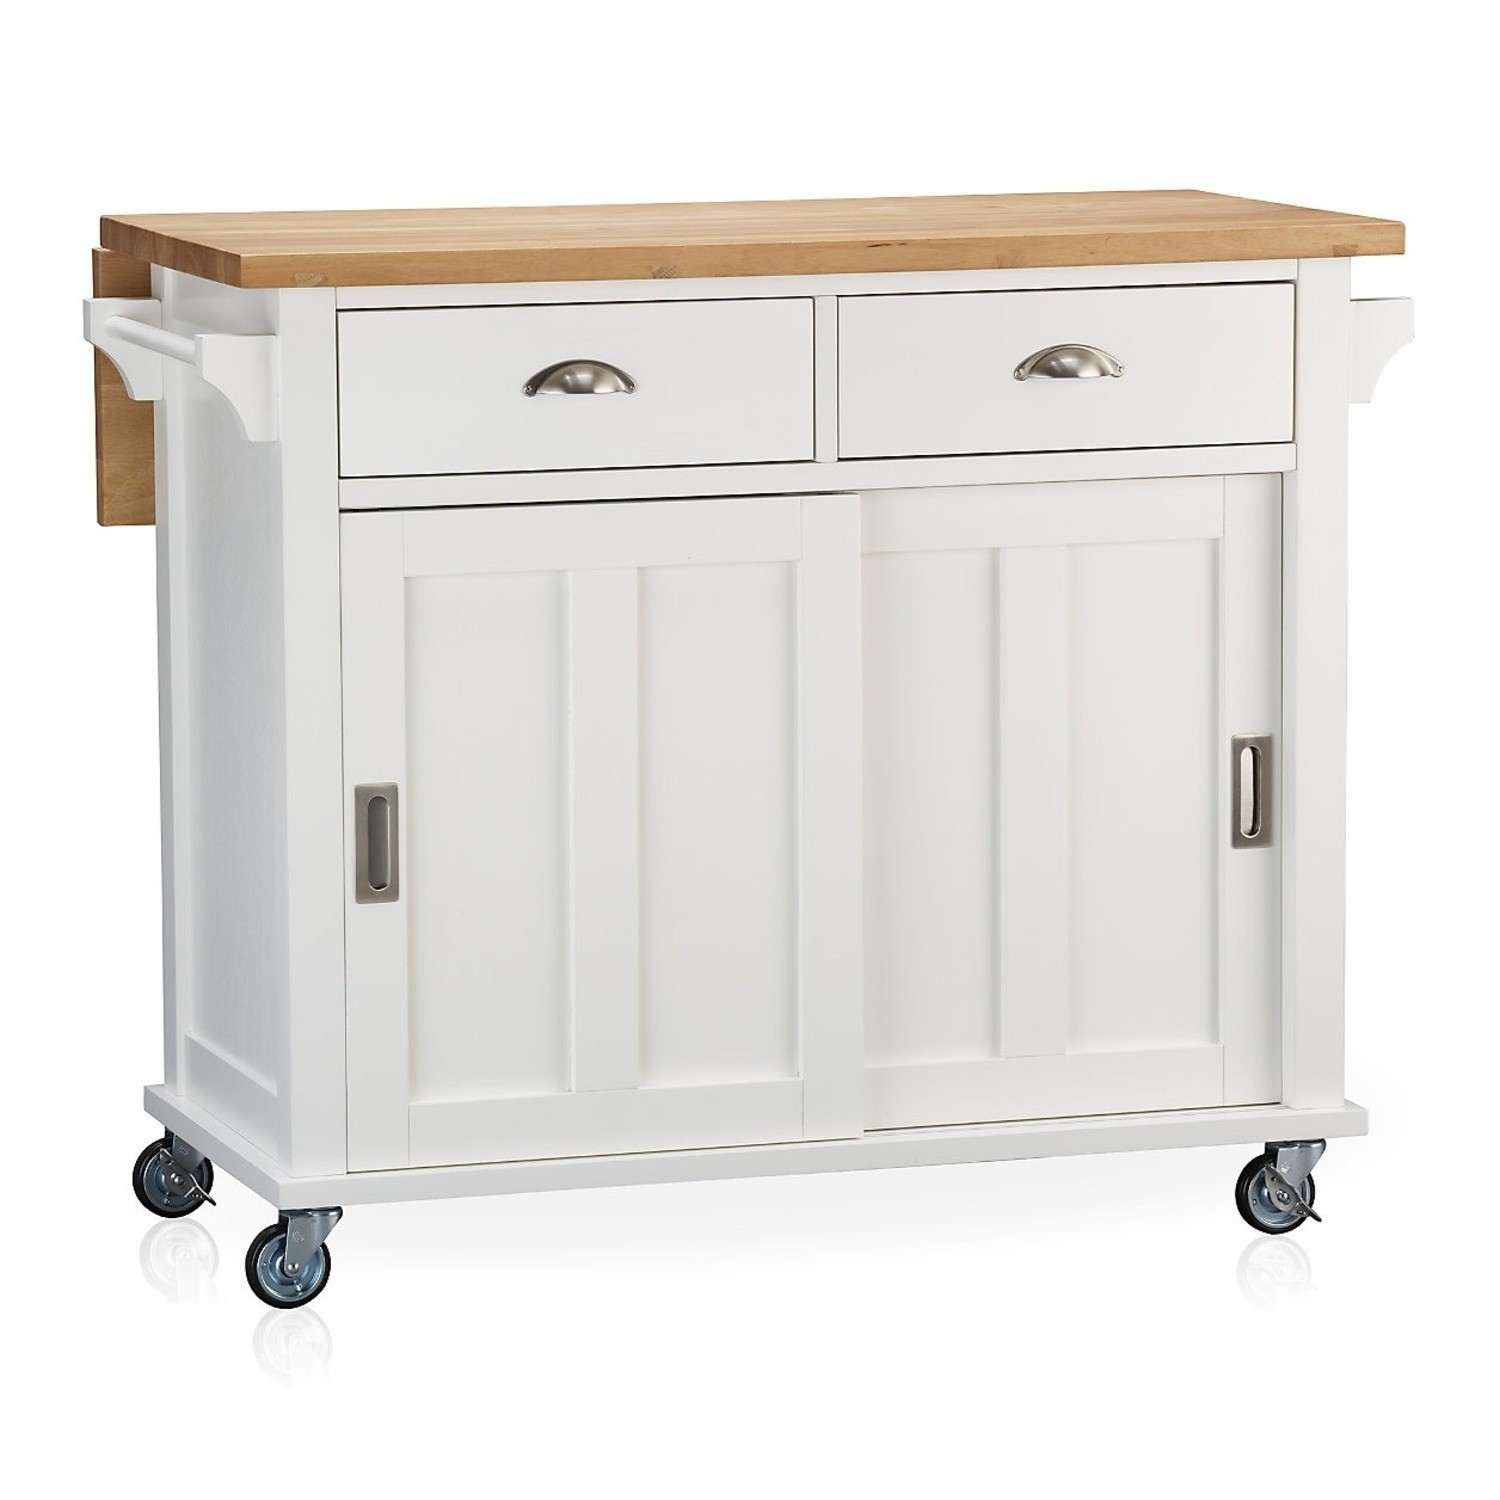 Merveilleux Drop Leaf Kitchen Island